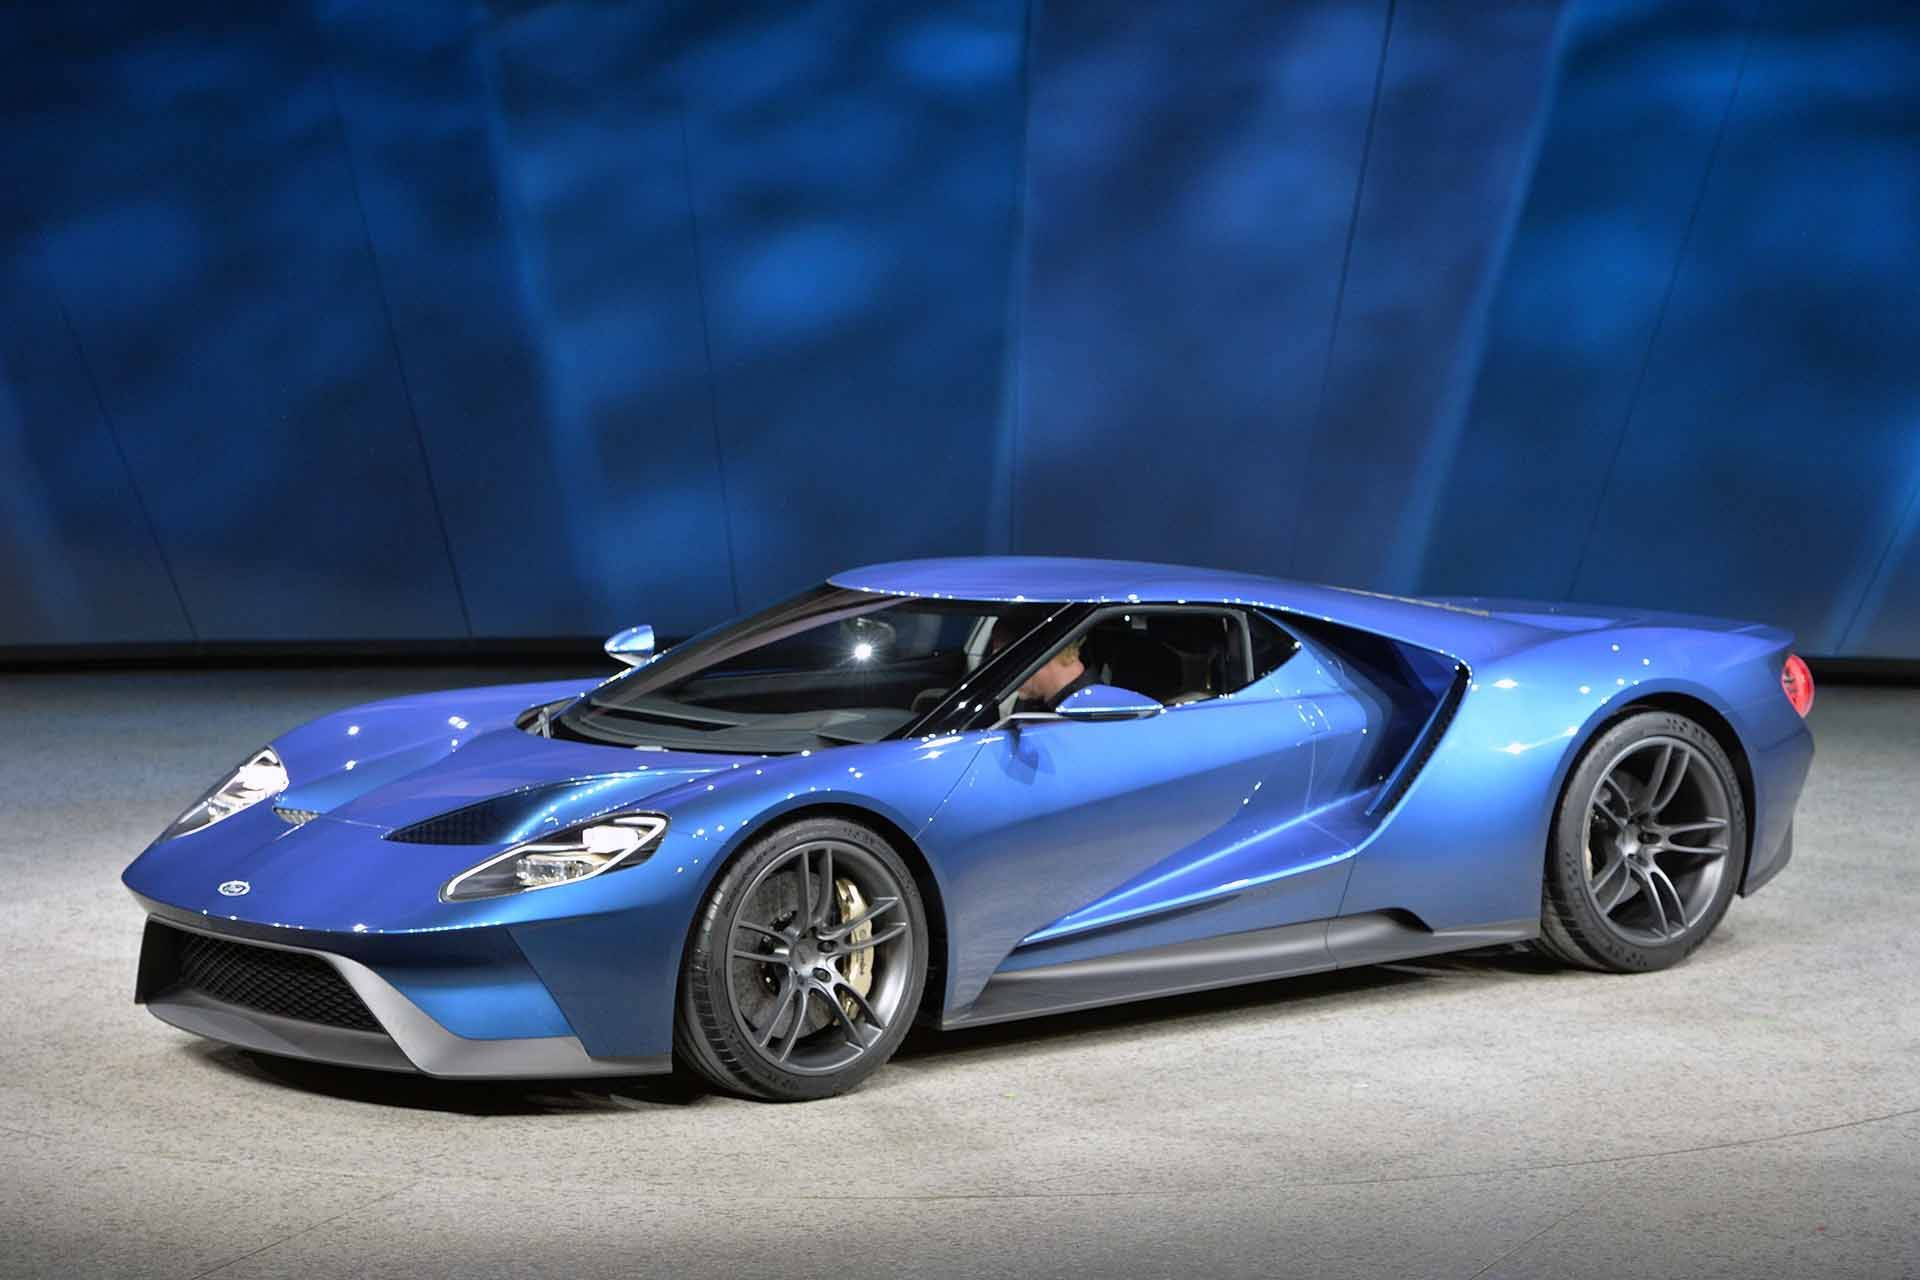 Ford Gt Specs And Price Is Definitely An American Sports Vehicle Made Considering That  Year Designers Of This Latest Version Hope A Significant